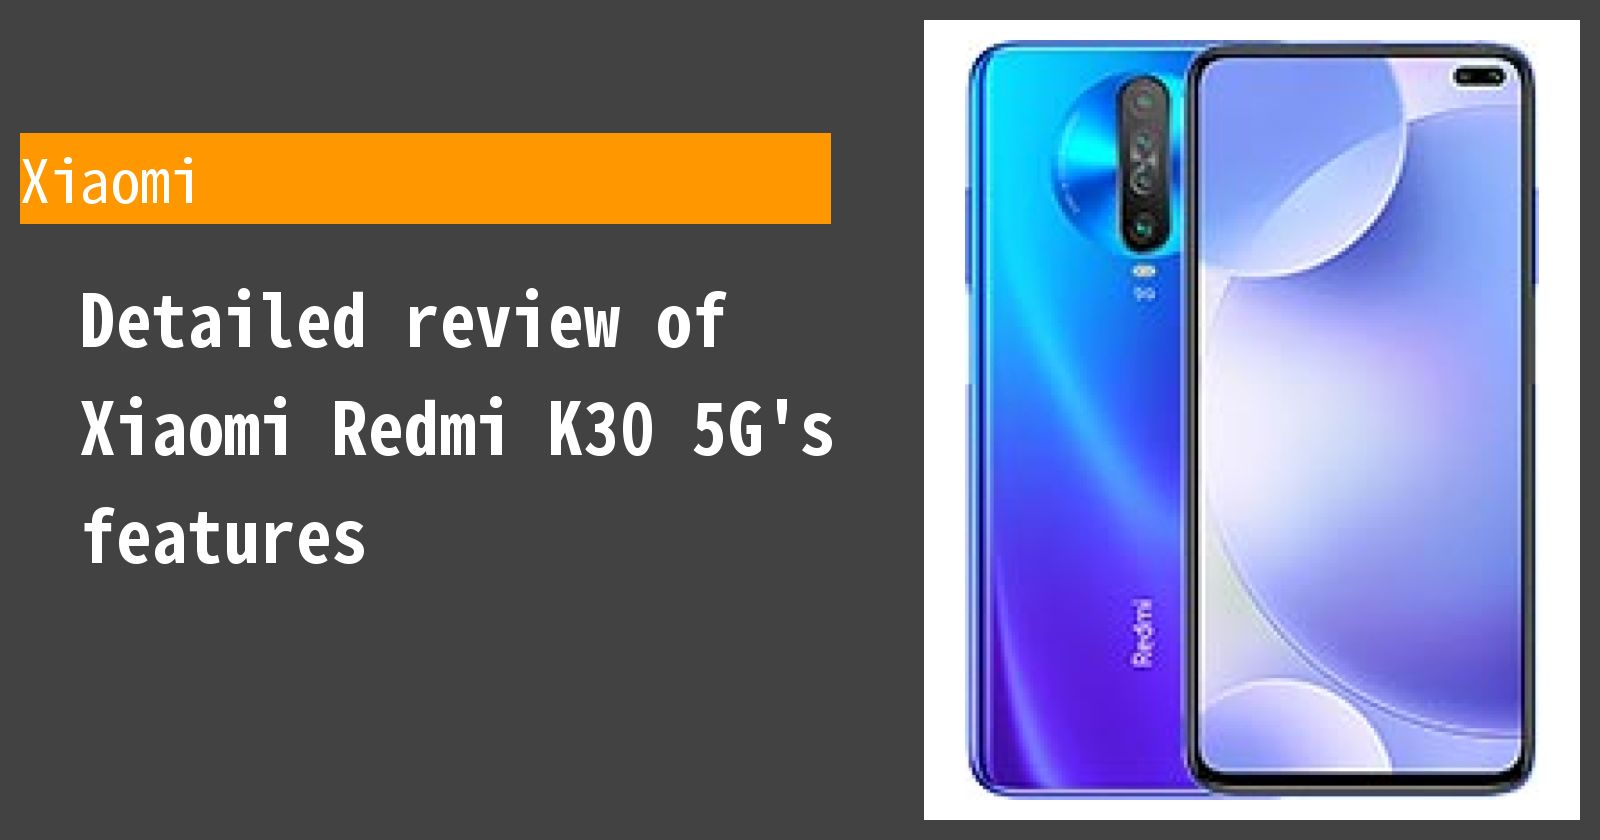 Detailed review of Xiaomi Redmi K30 5G's features